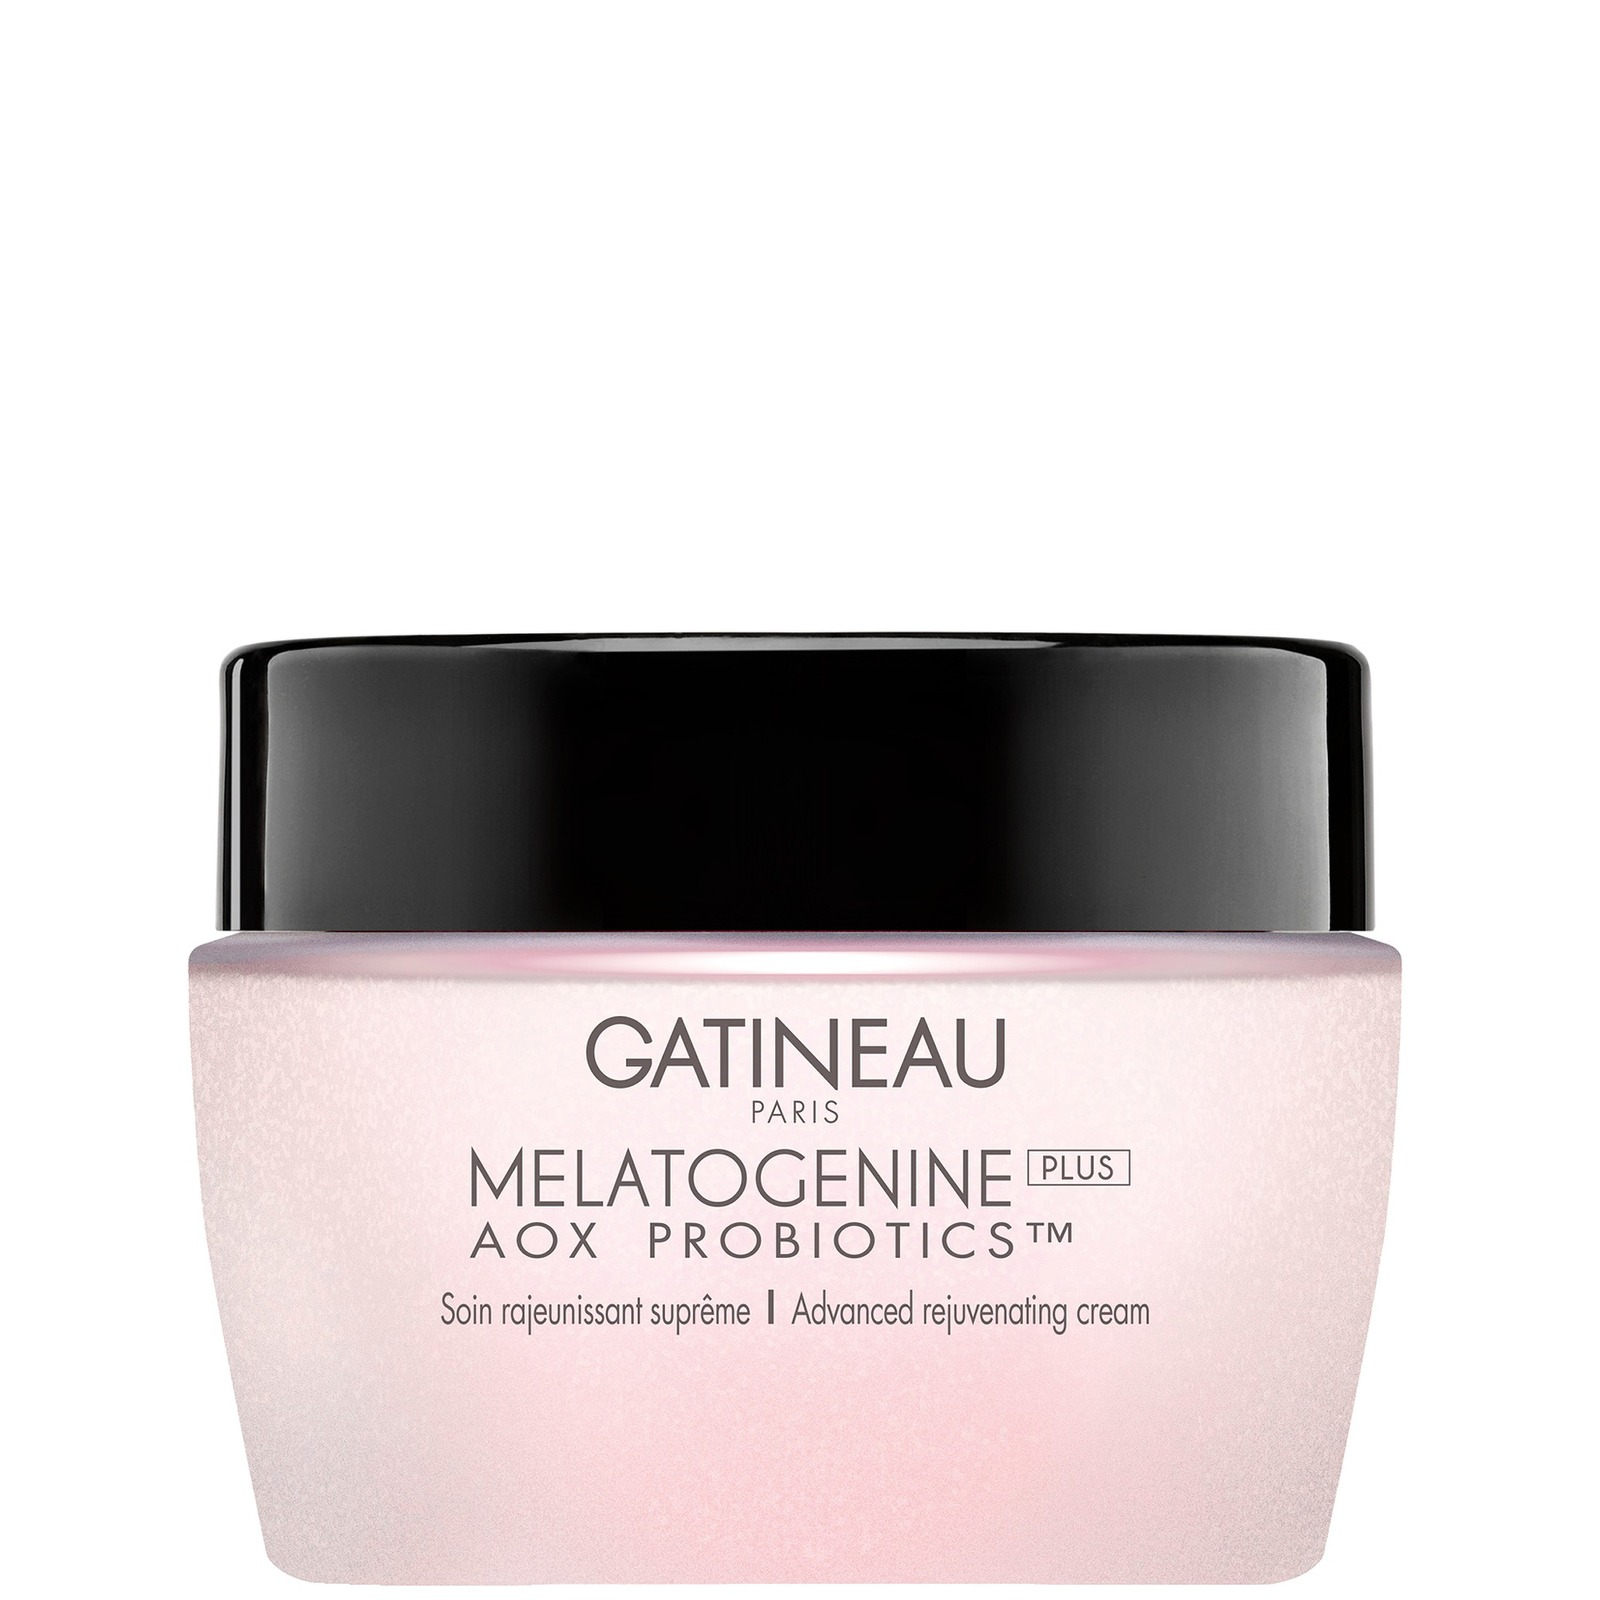 Gatineau Face Melatogenine AOX Probiotics Advanced Rejuvenating Cream 50ml